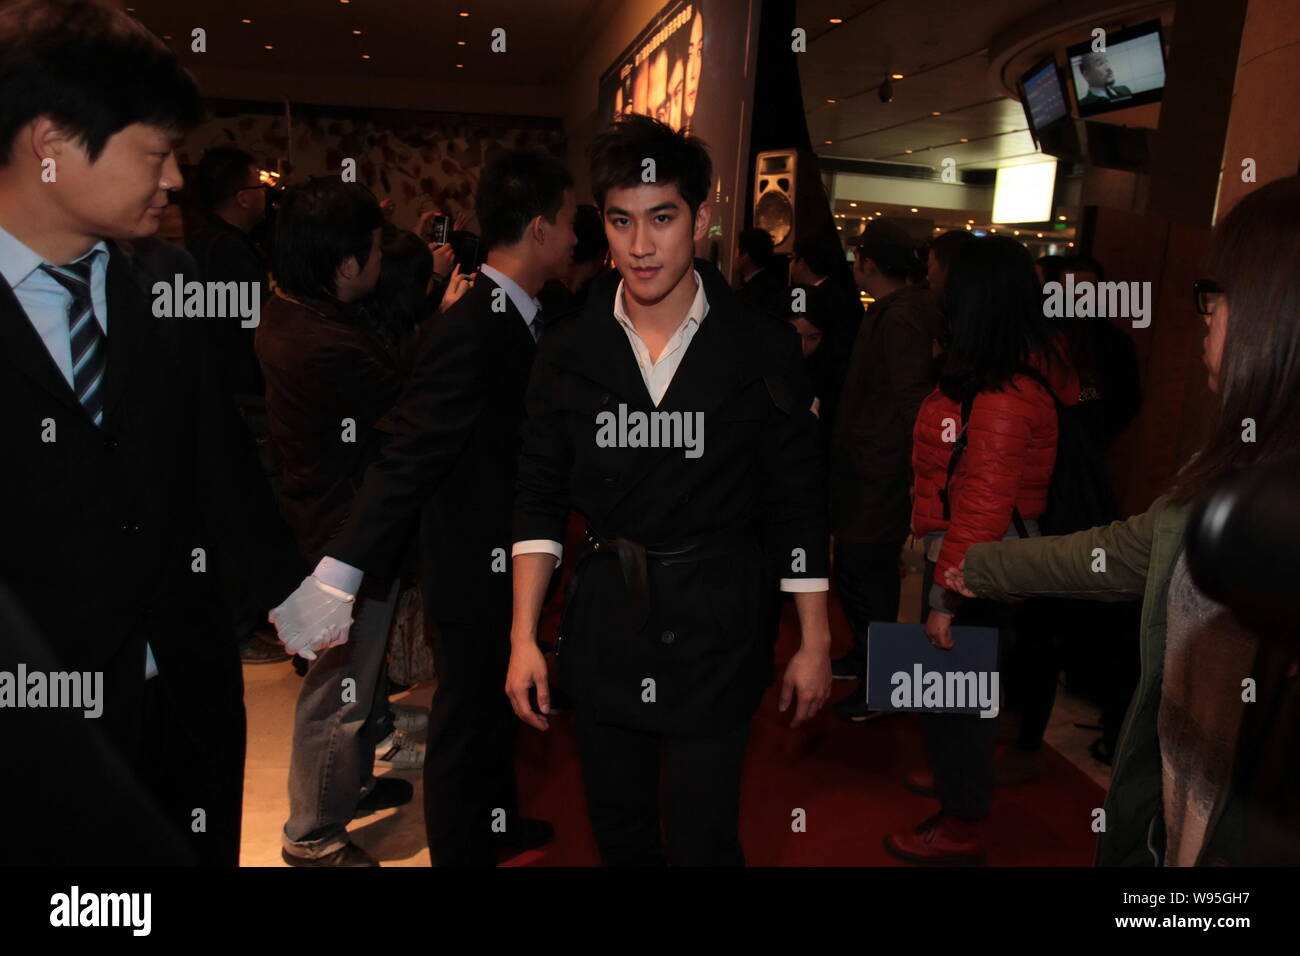 Hong Kong Singer And Actor Aarif Rahman Lee Arrives At The Premiere Of The Movie Cold War In Beijing China 5 November 2012 Stock Photo Alamy